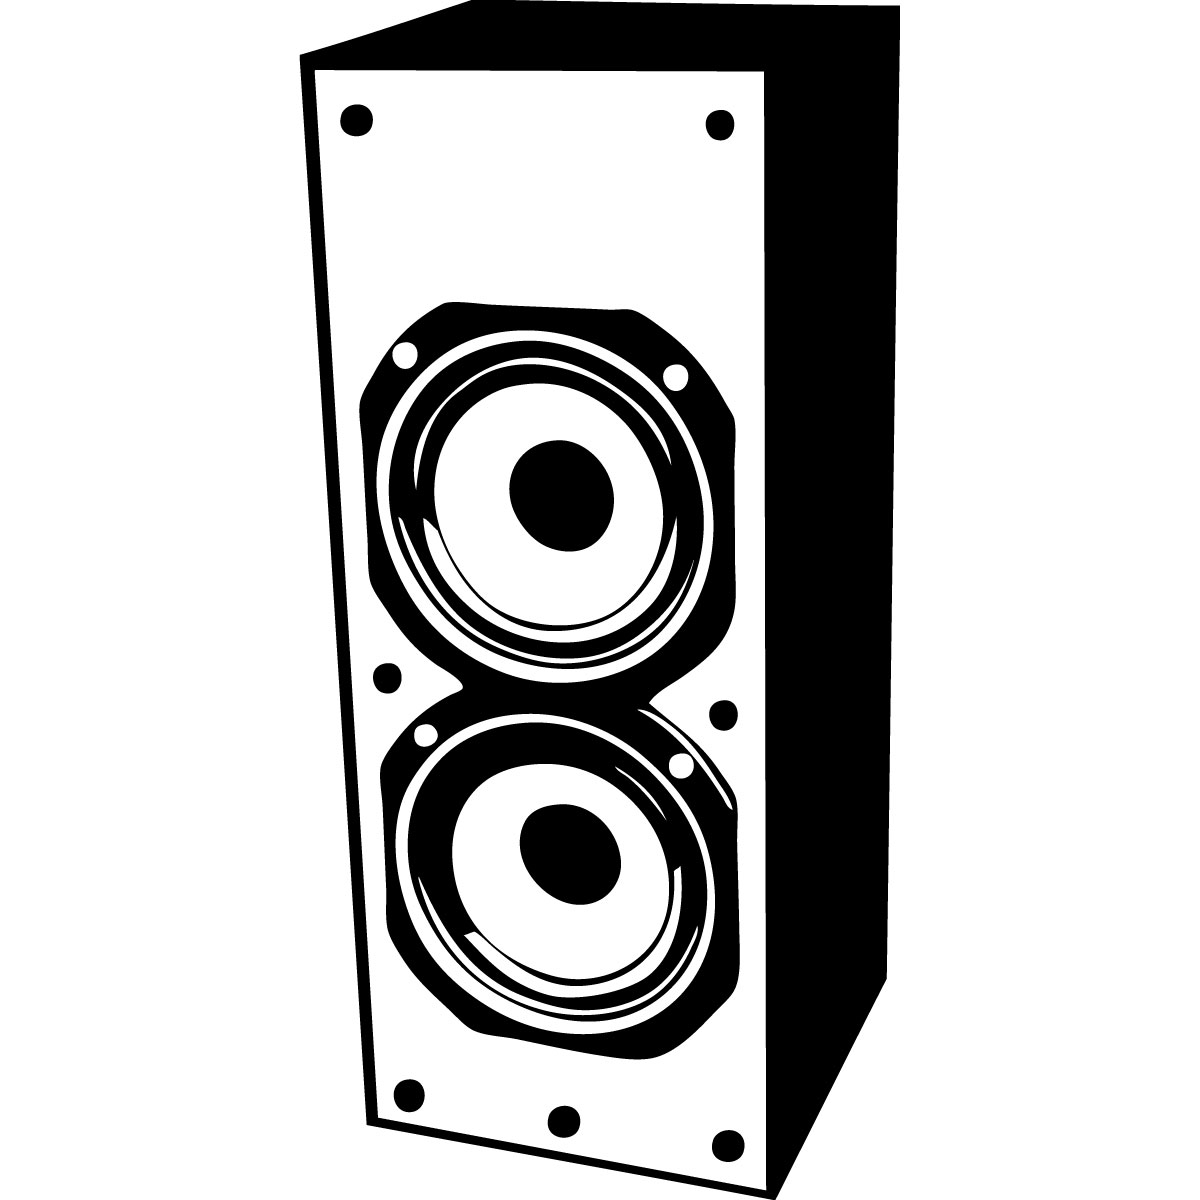 sticker-hautparleur-2-ambiance-sticker-music-speaker-R005.jpg